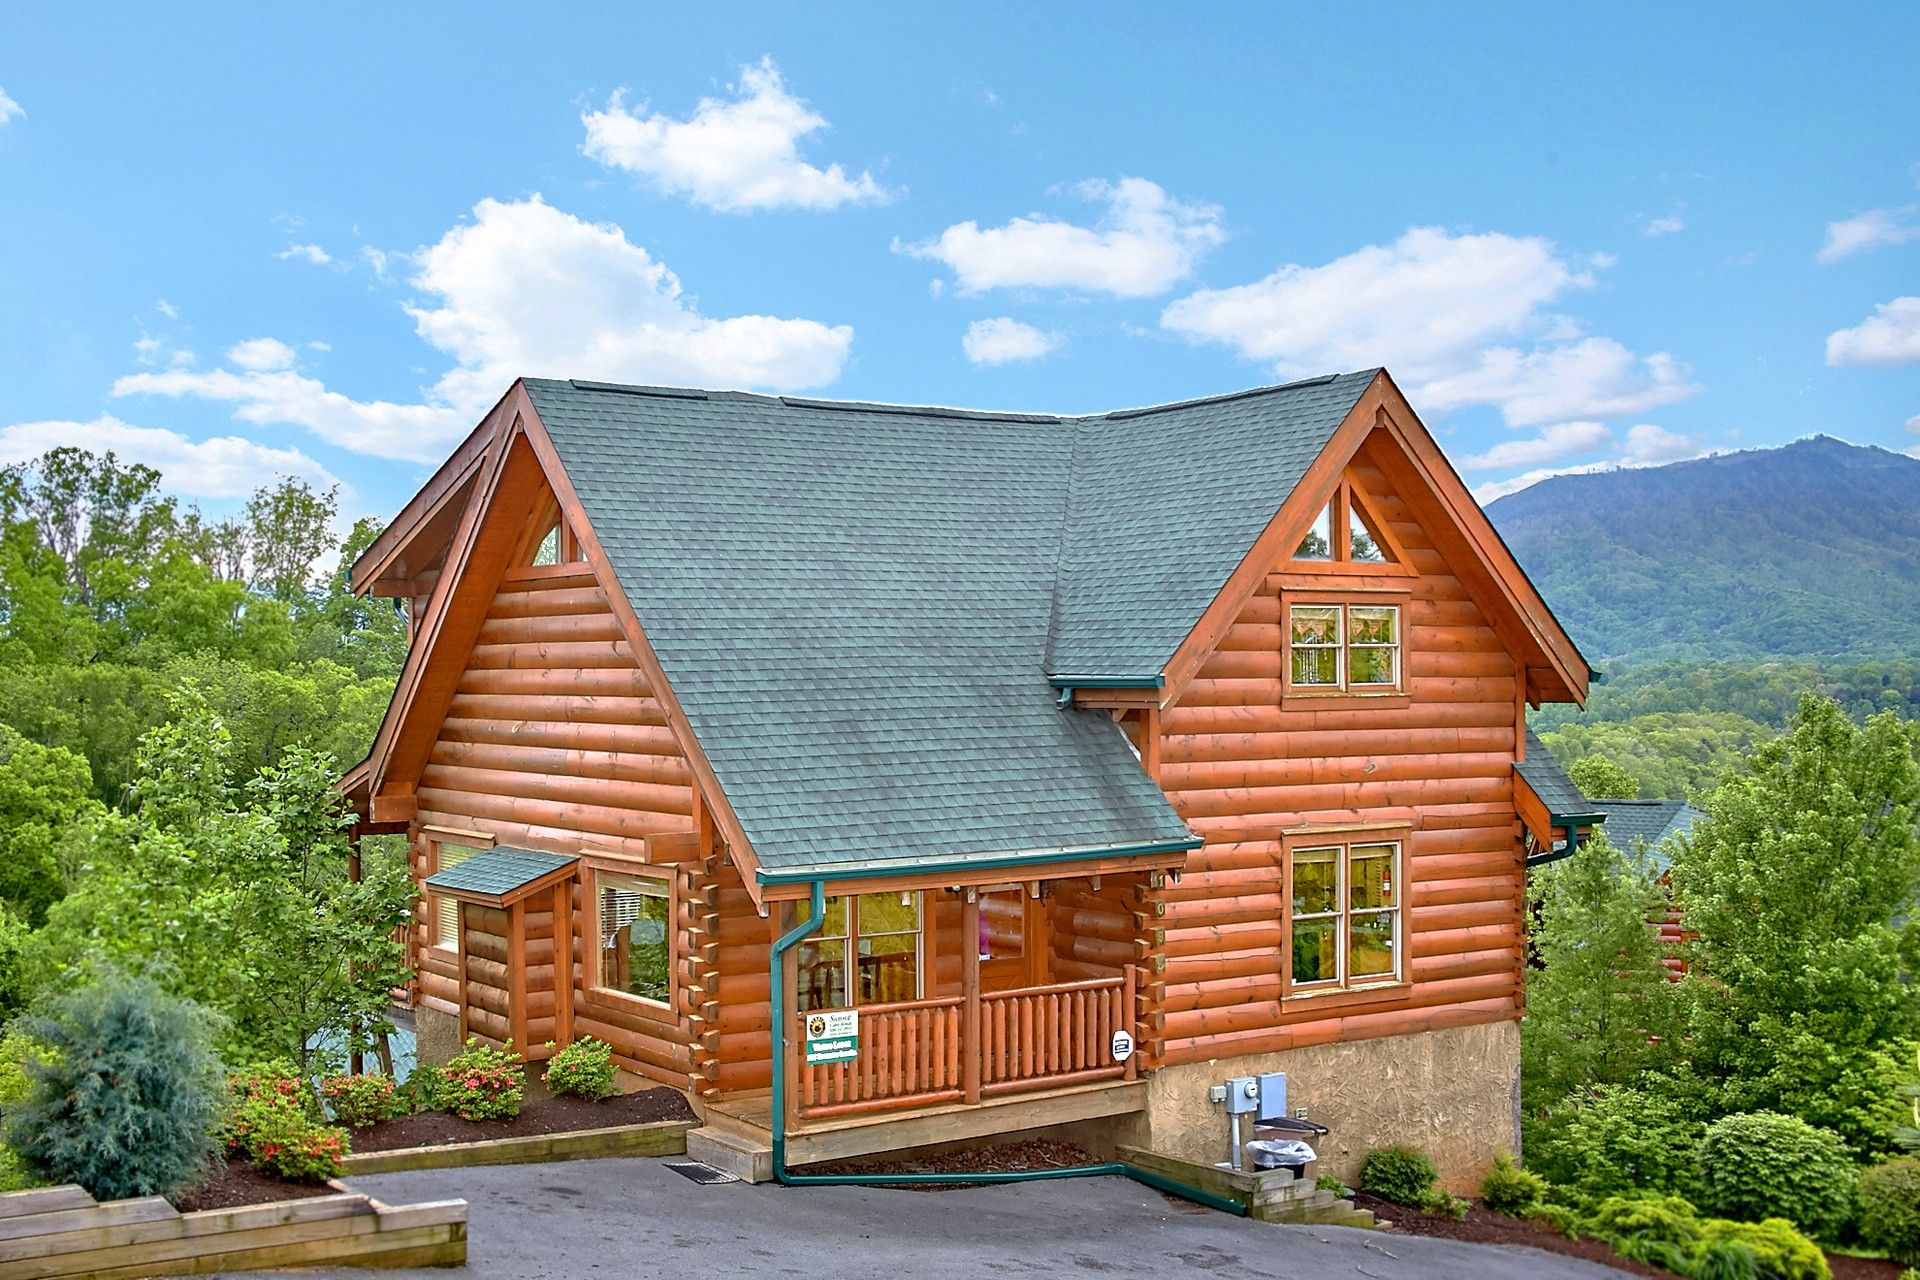 10 Fabulous Cabin Plans to Suit You! Renting a house